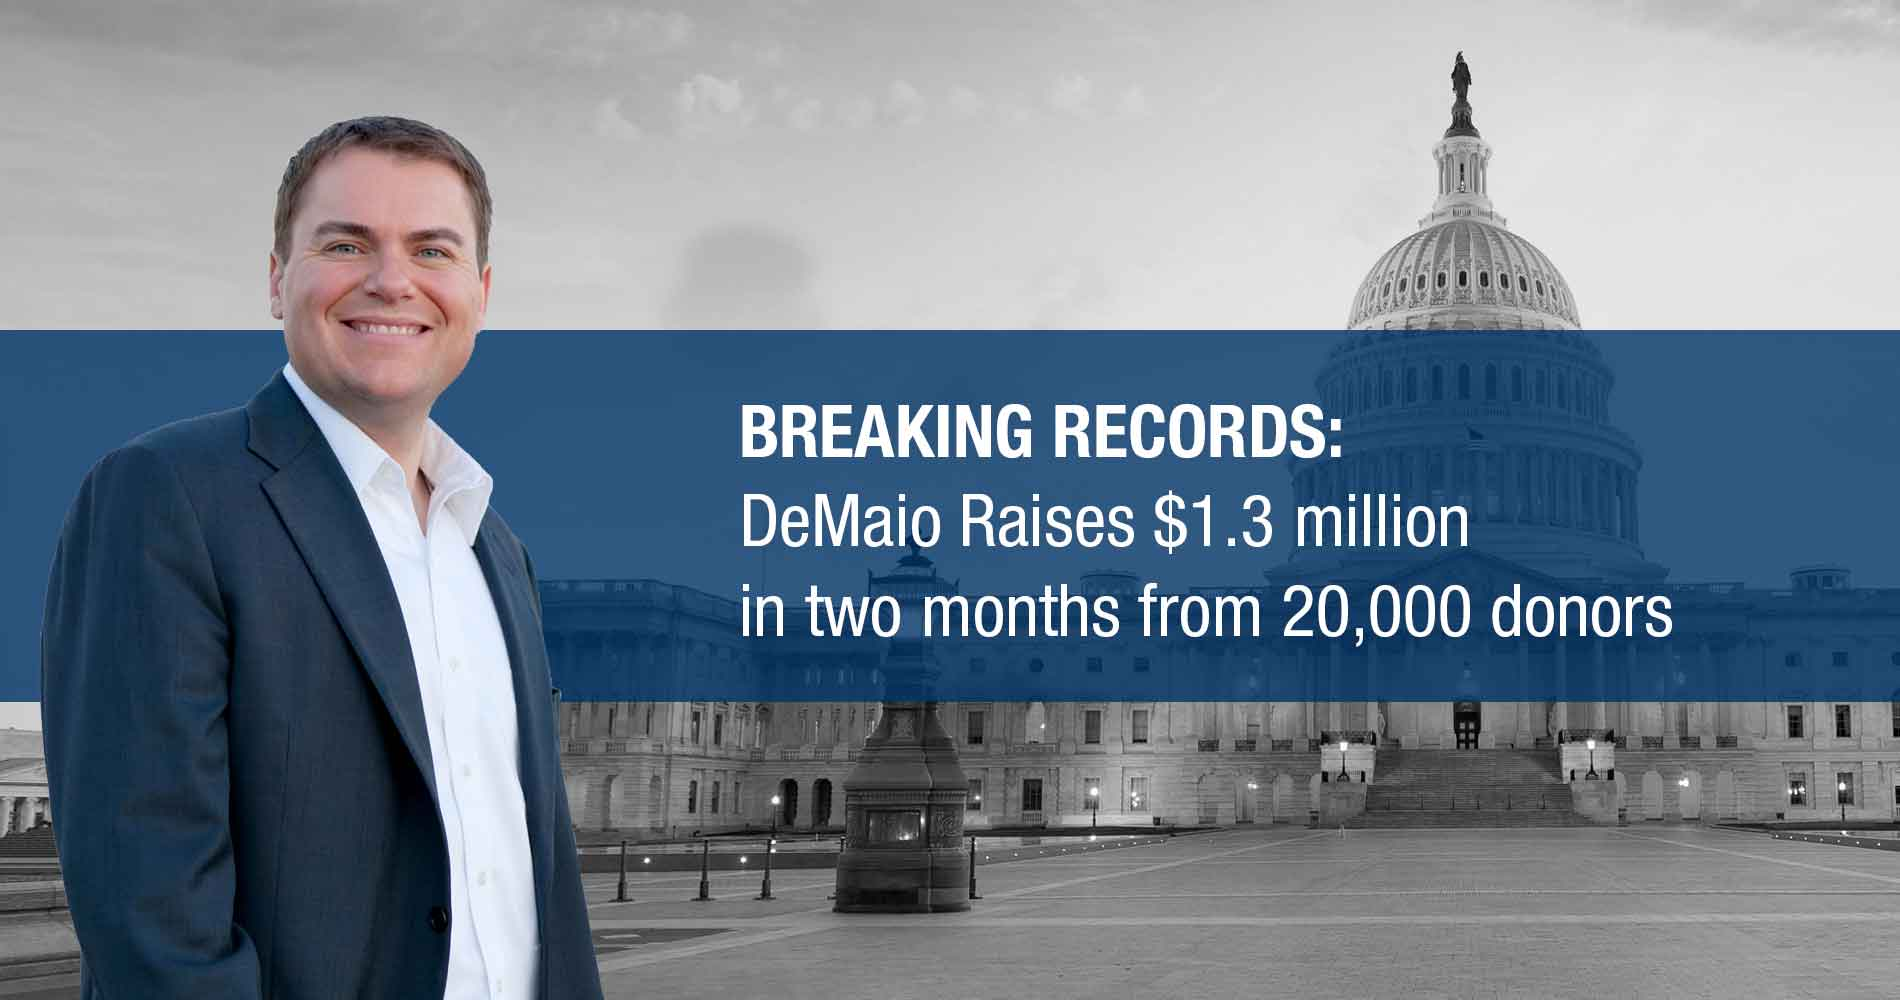 Breaking Records: DeMaio Raises $1.3 million in two months from 20000 donors